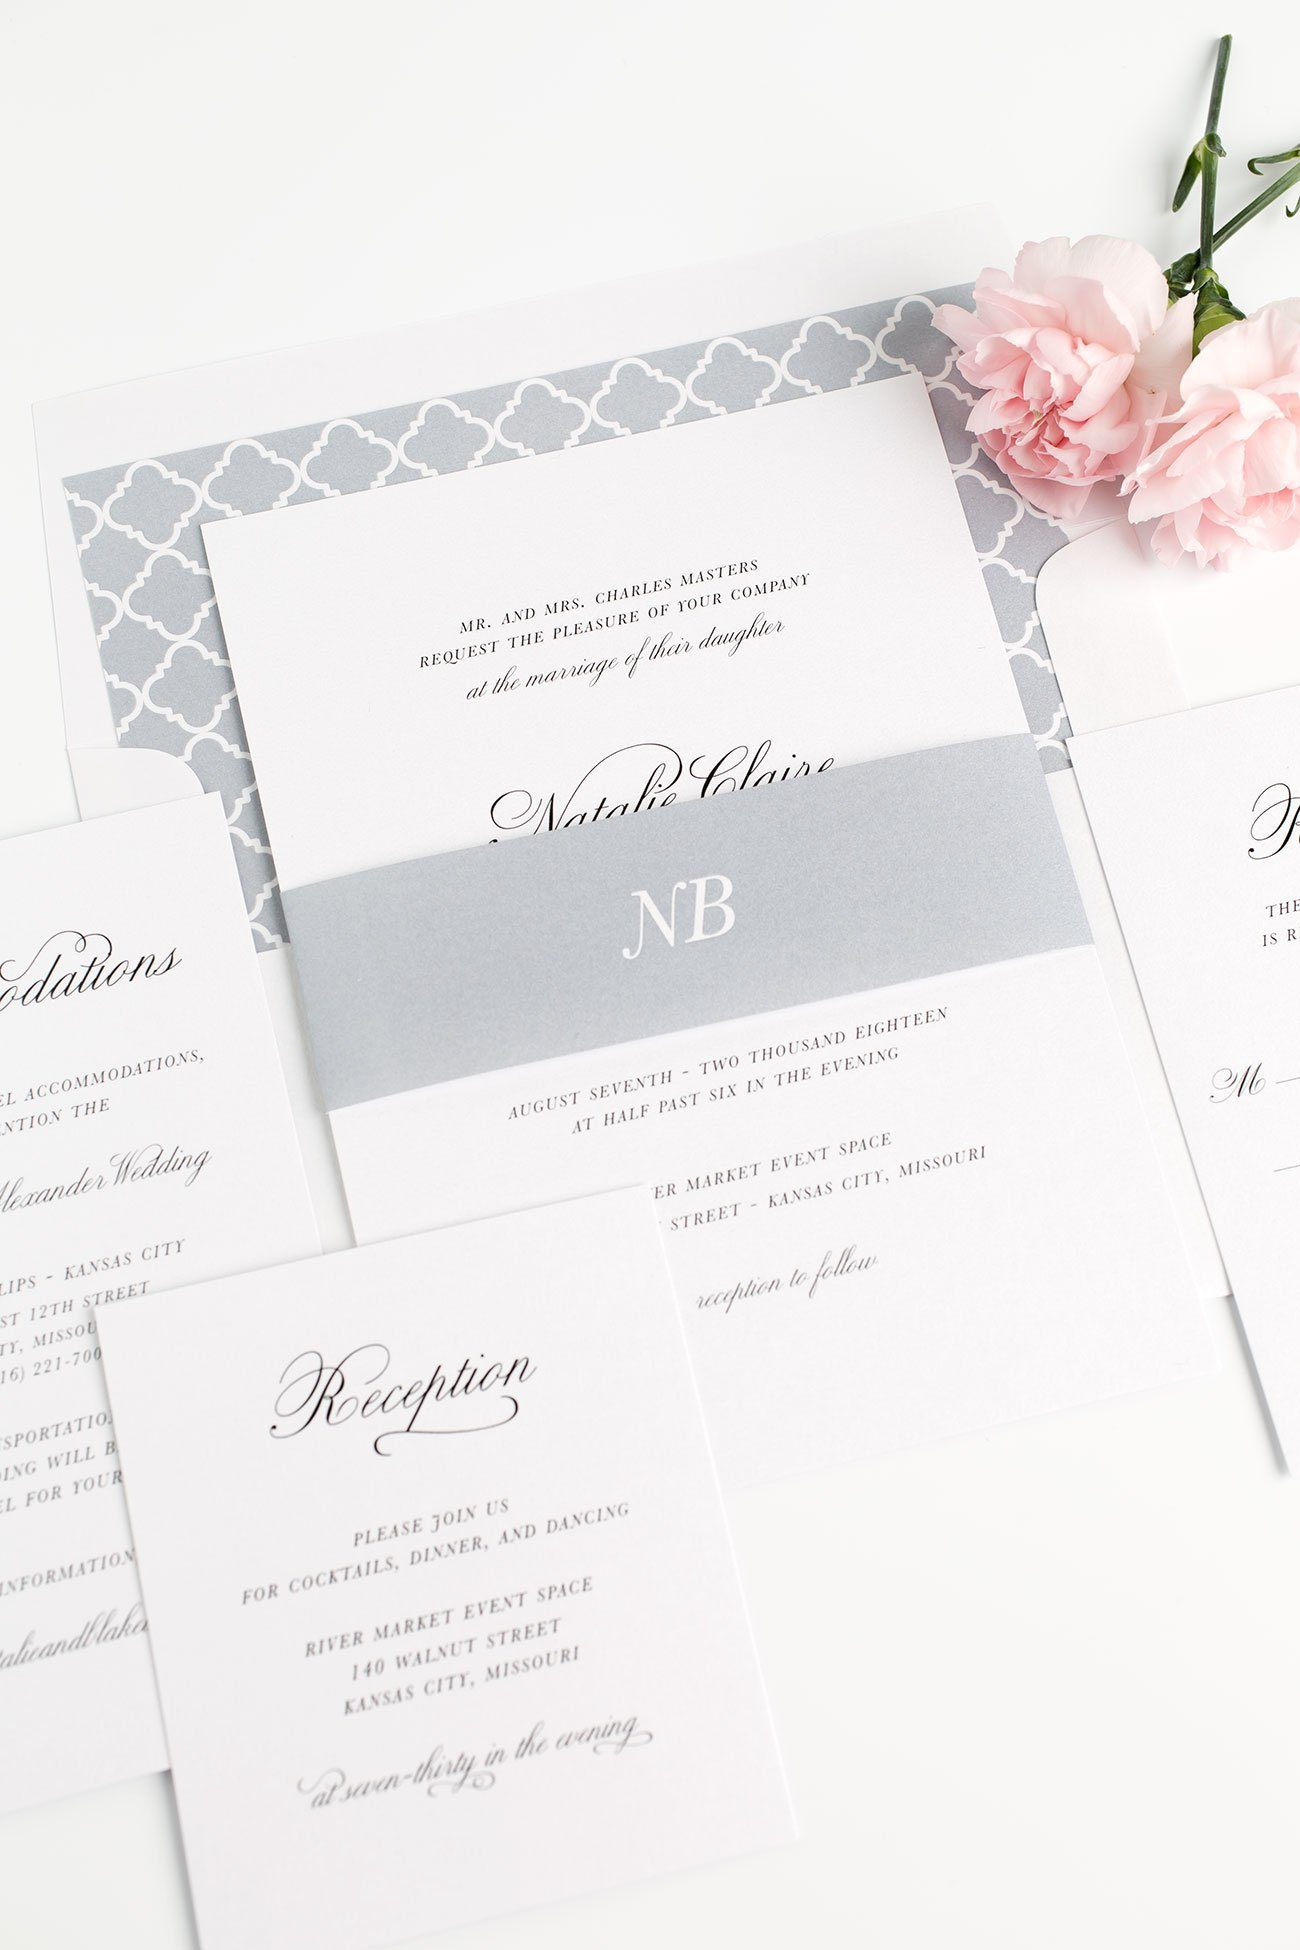 Classic Wedding Invitations in Dove Gray with a Trellis Envelope Liner